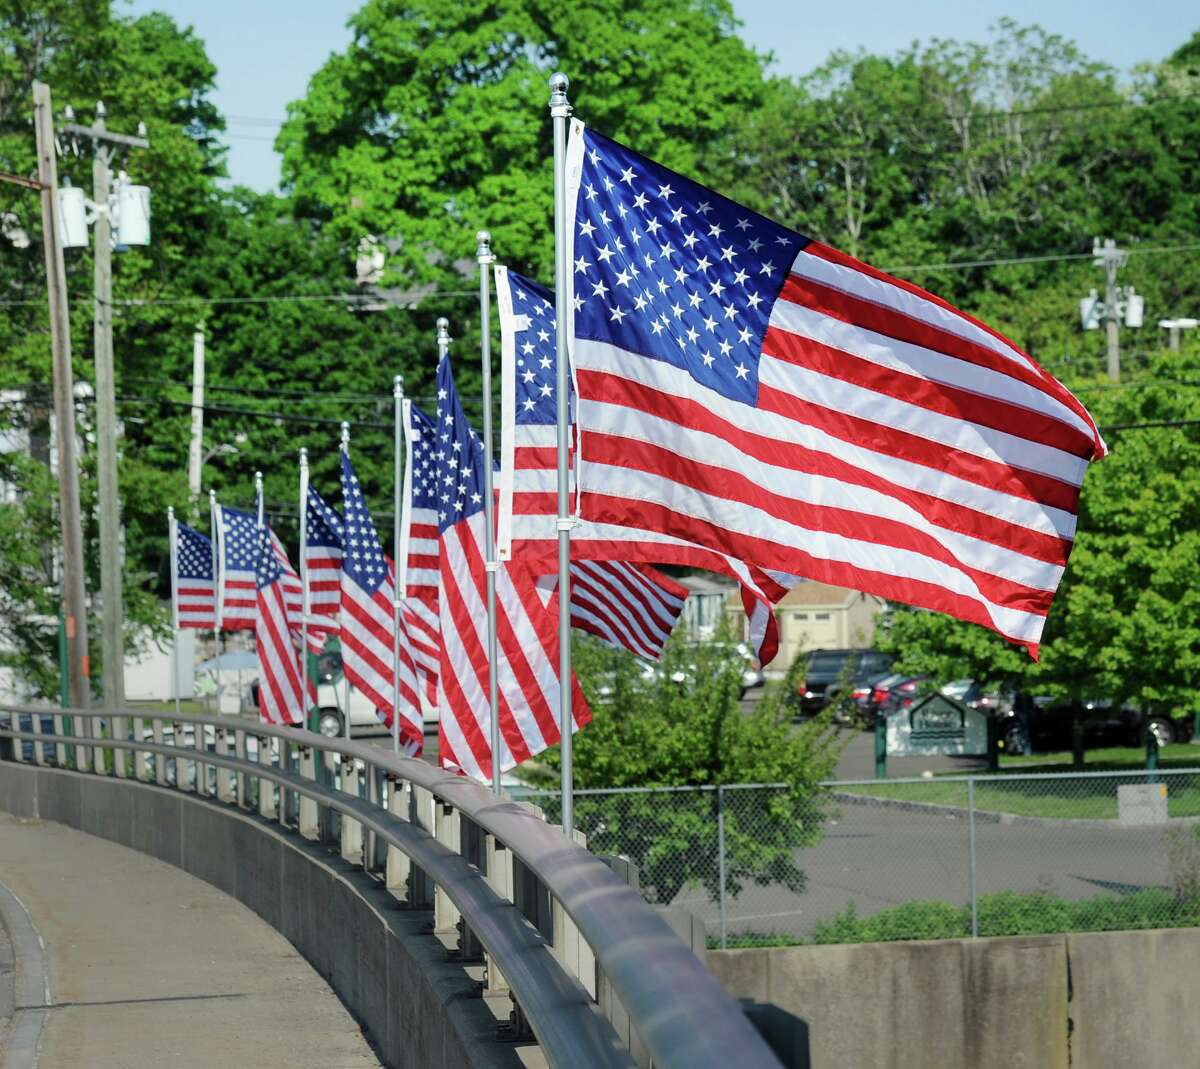 The American flags are up on the David N. Theis Memorial Bridge that spans the Mianus Waterway in Greenwich, Conn., Friday, May 25, 2018. A similar program could be coming to Greenwich Avenue this summer.